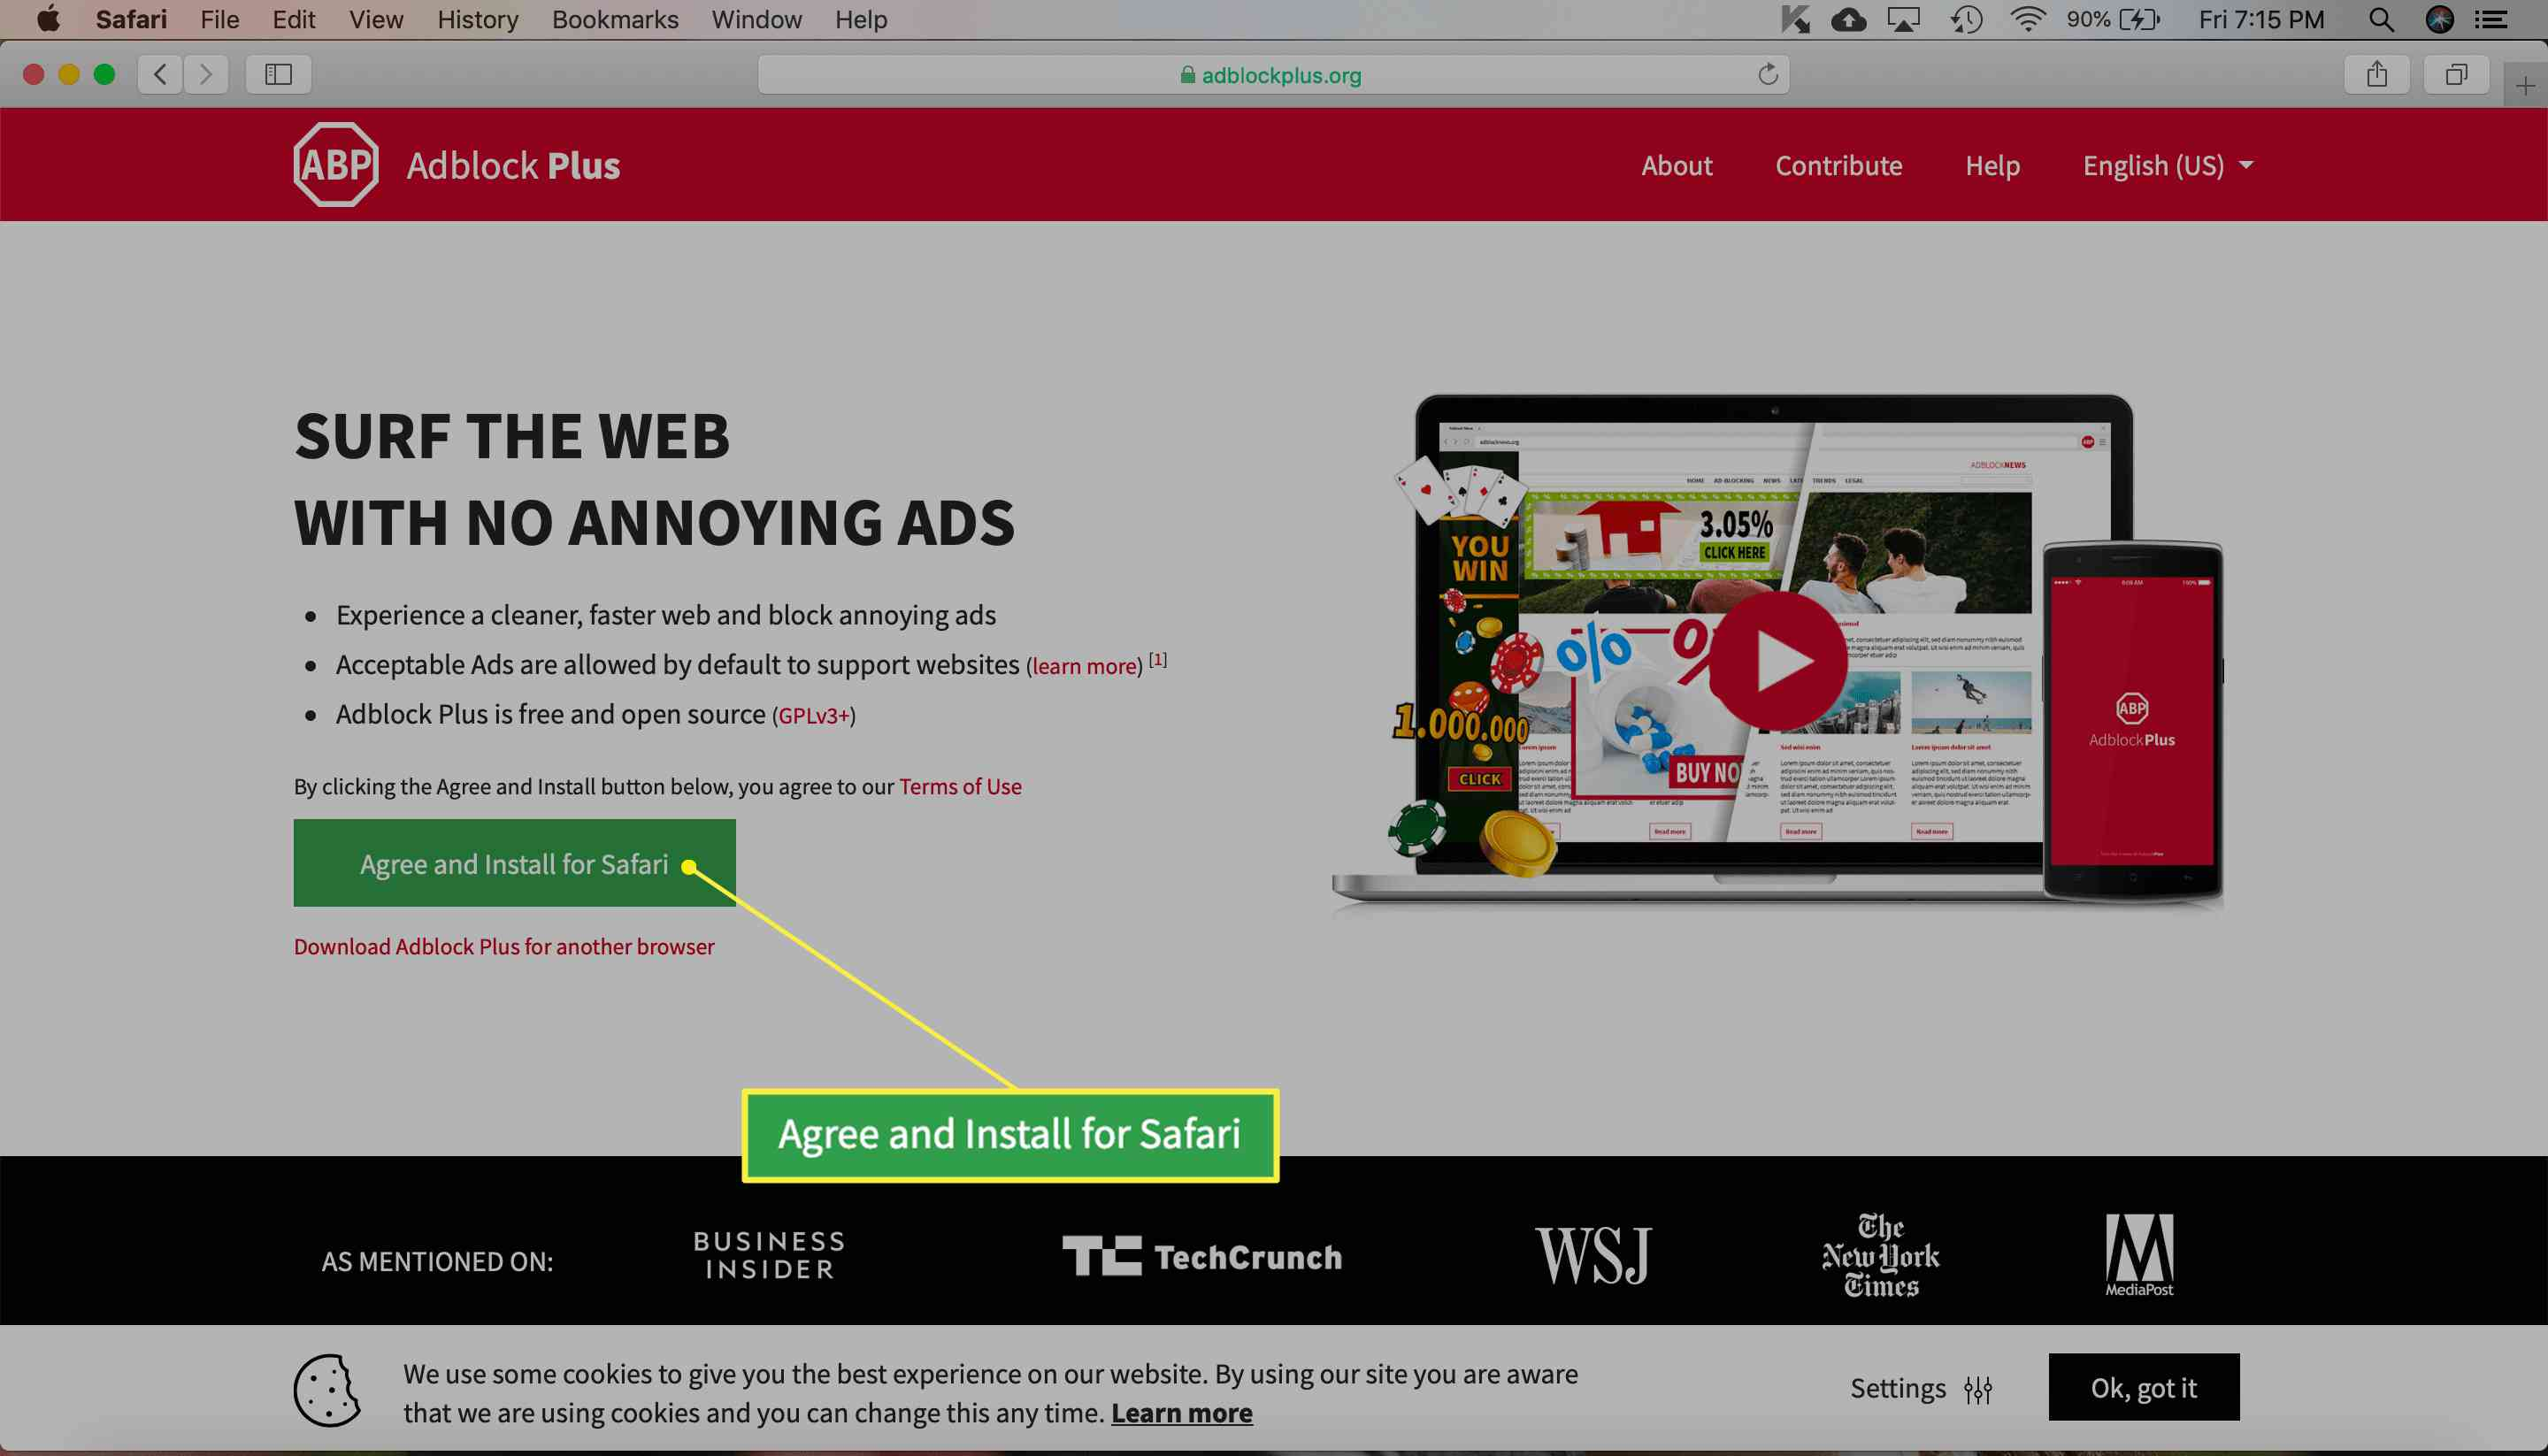 Adblock Plus extension download screen with Agree and Install for Safari highlighted